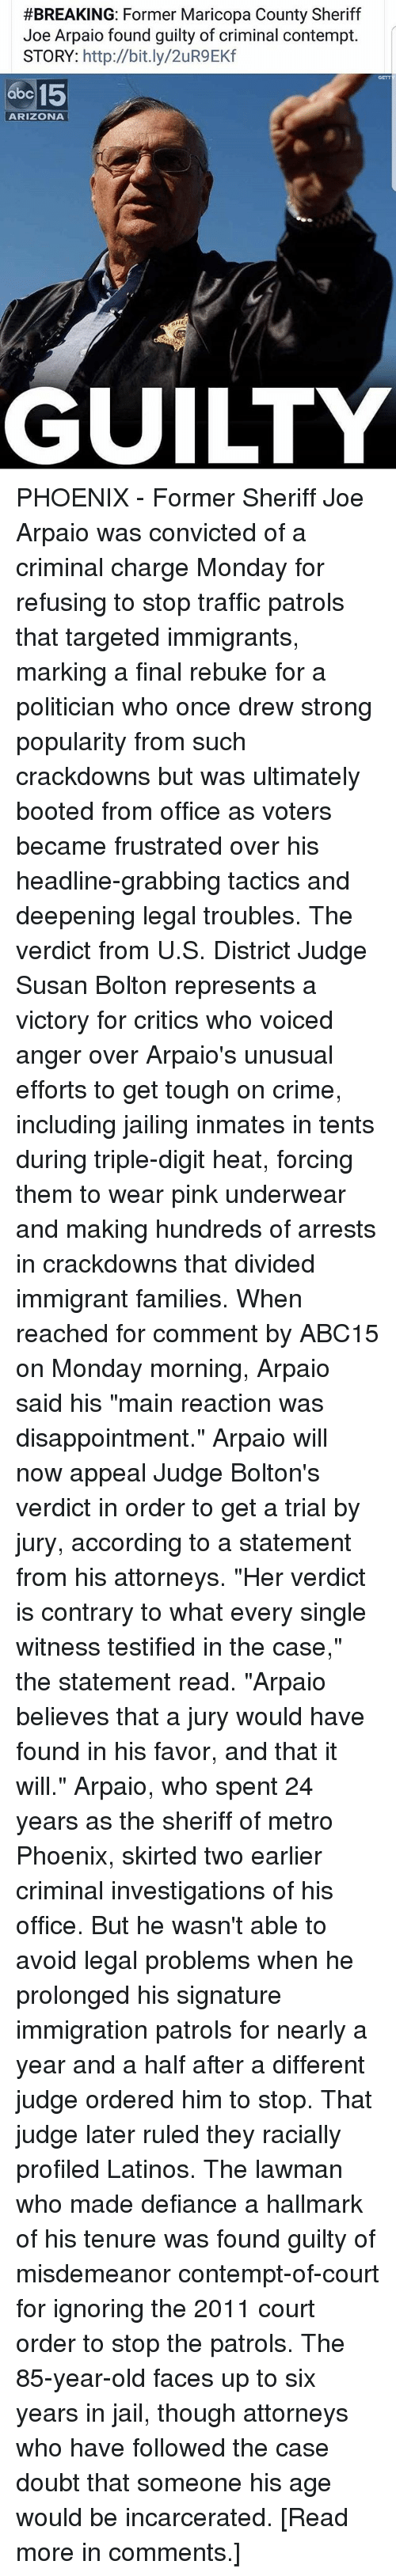 """Contemption:  #BREAKING: Former Maricopa County Sheriff  Joe Arpaio found guilty of criminal contempt.  STORY: http://bit.ly/2uR9EKf  abe 15  ARIZONA  HE  GUILTY PHOENIX - Former Sheriff Joe Arpaio was convicted of a criminal charge Monday for refusing to stop traffic patrols that targeted immigrants, marking a final rebuke for a politician who once drew strong popularity from such crackdowns but was ultimately booted from office as voters became frustrated over his headline-grabbing tactics and deepening legal troubles. The verdict from U.S. District Judge Susan Bolton represents a victory for critics who voiced anger over Arpaio's unusual efforts to get tough on crime, including jailing inmates in tents during triple-digit heat, forcing them to wear pink underwear and making hundreds of arrests in crackdowns that divided immigrant families. When reached for comment by ABC15 on Monday morning, Arpaio said his """"main reaction was disappointment."""" Arpaio will now appeal Judge Bolton's verdict in order to get a trial by jury, according to a statement from his attorneys. """"Her verdict is contrary to what every single witness testified in the case,"""" the statement read. """"Arpaio believes that a jury would have found in his favor, and that it will."""" Arpaio, who spent 24 years as the sheriff of metro Phoenix, skirted two earlier criminal investigations of his office. But he wasn't able to avoid legal problems when he prolonged his signature immigration patrols for nearly a year and a half after a different judge ordered him to stop. That judge later ruled they racially profiled Latinos. The lawman who made defiance a hallmark of his tenure was found guilty of misdemeanor contempt-of-court for ignoring the 2011 court order to stop the patrols. The 85-year-old faces up to six years in jail, though attorneys who have followed the case doubt that someone his age would be incarcerated. [Read more in comments.]"""